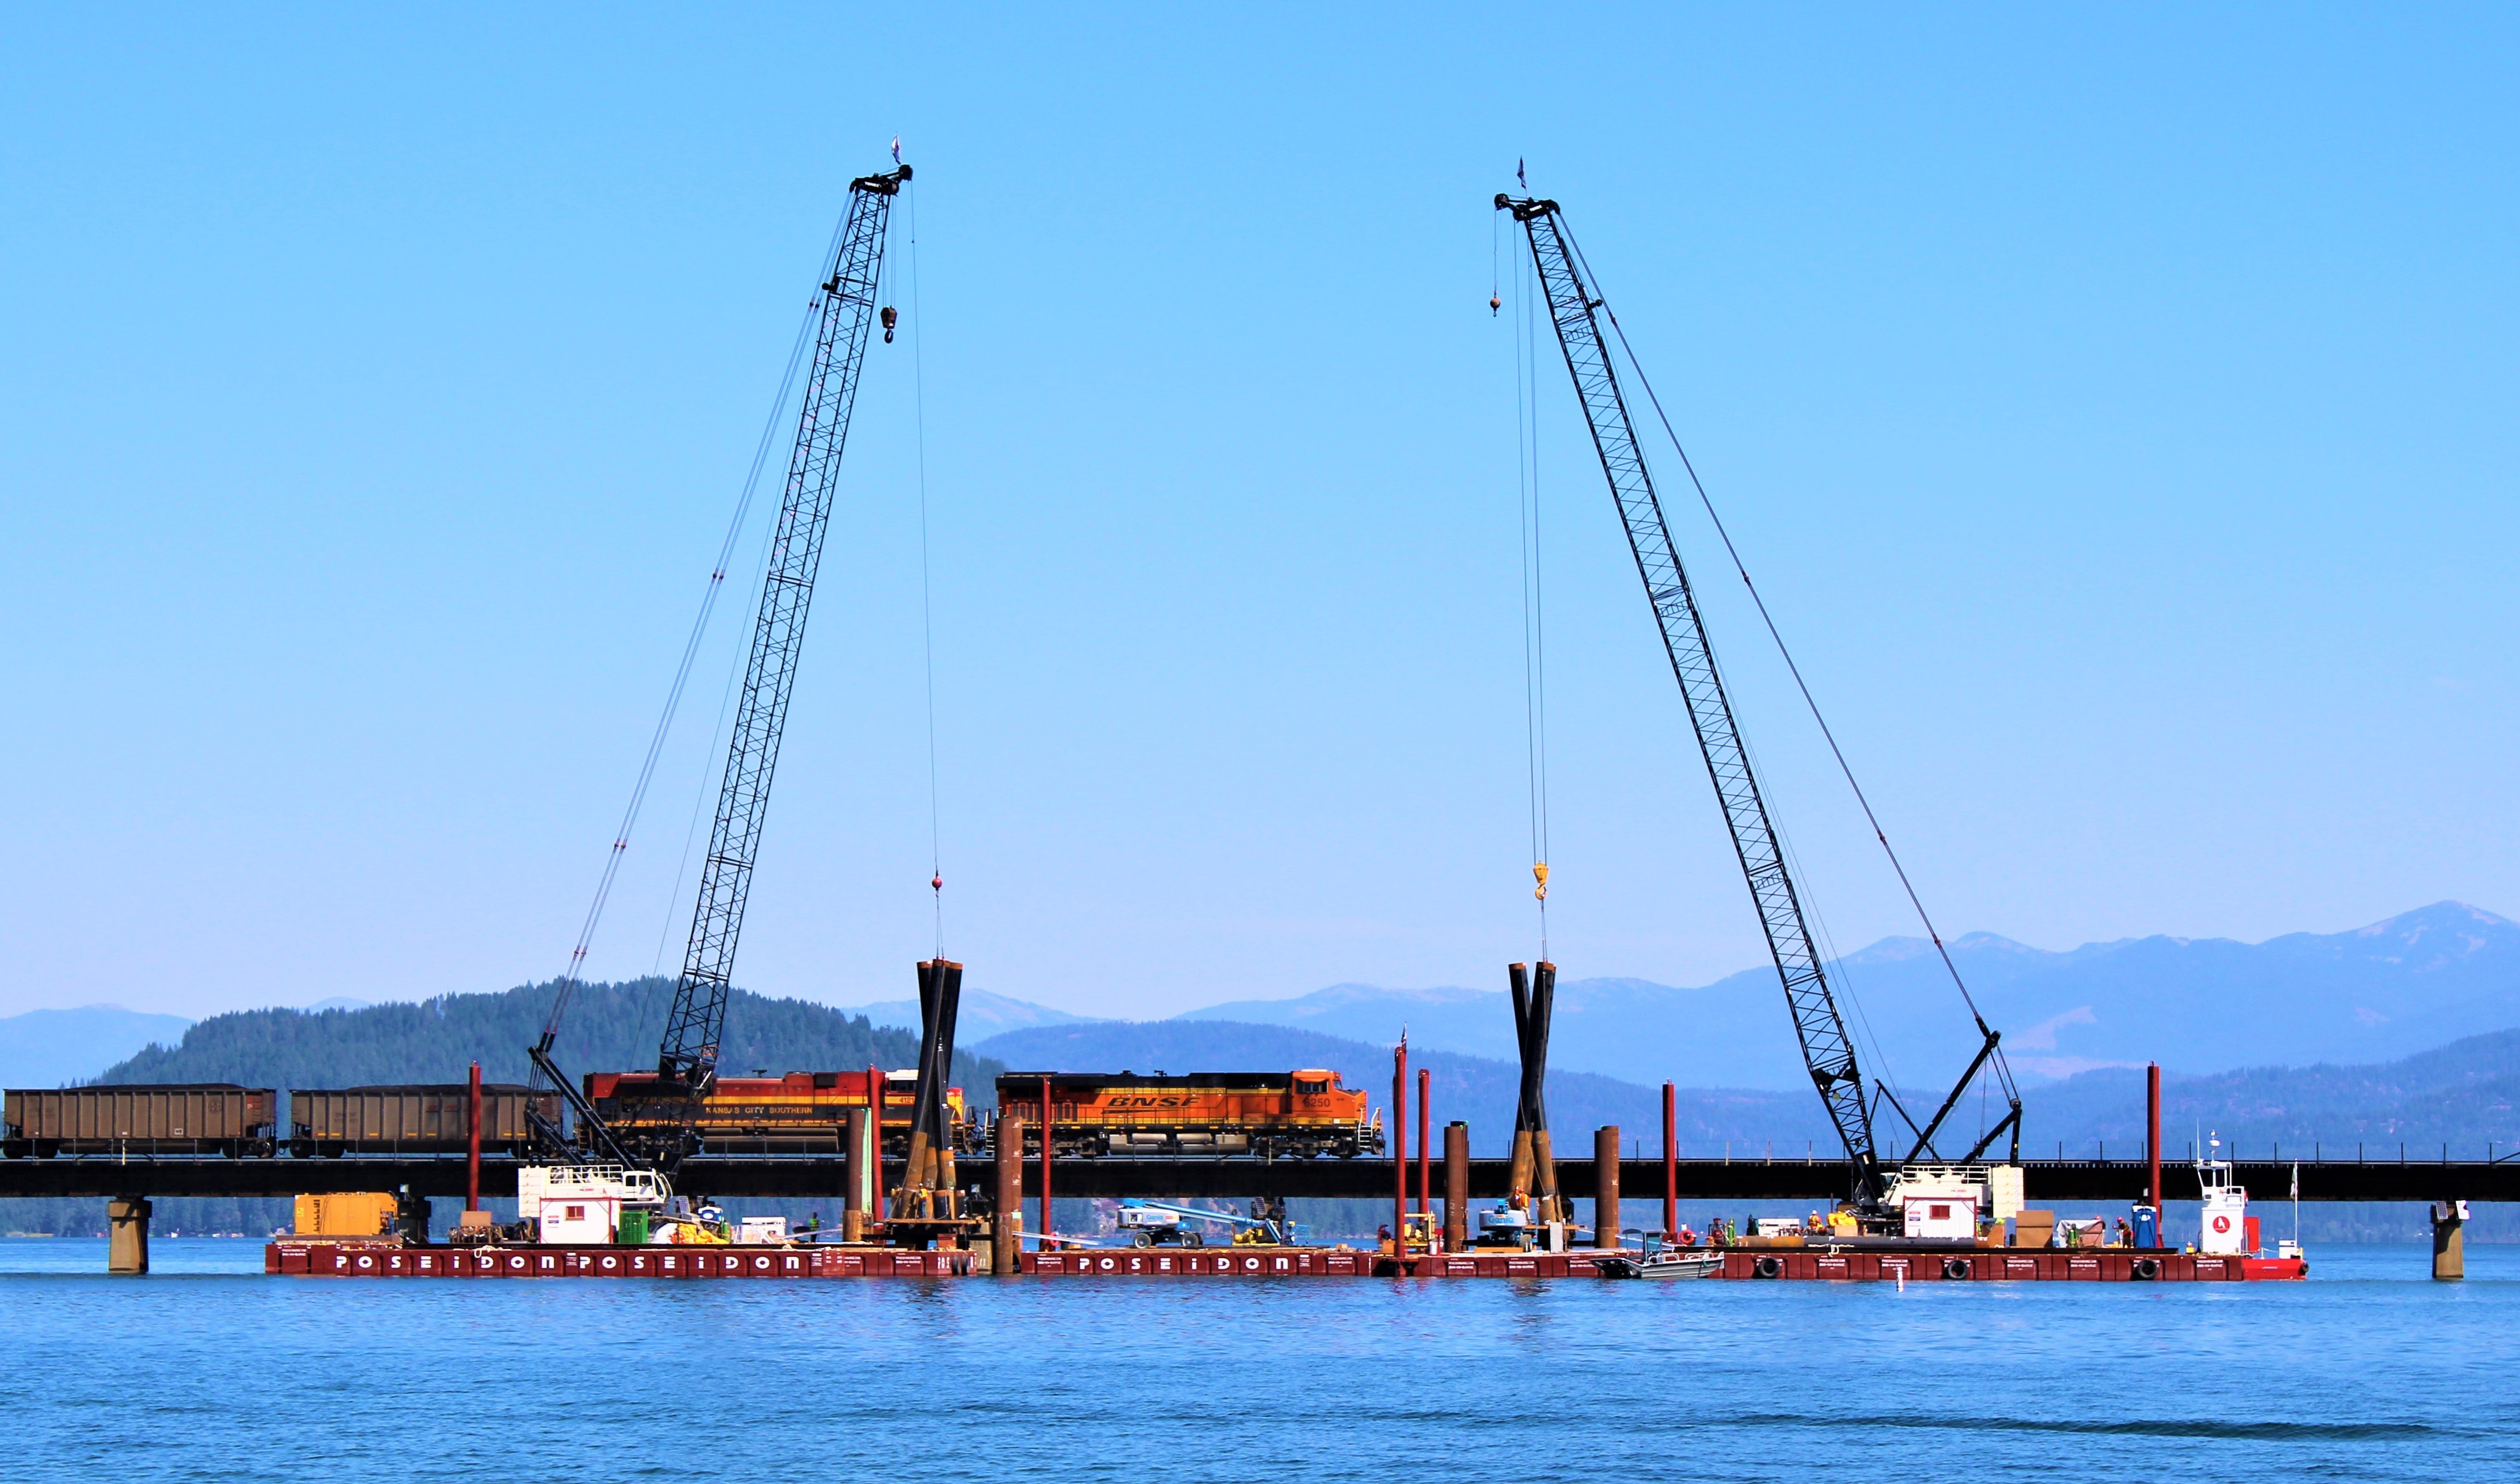 Ames Construction from Burnsville, MN works on the new bridge in Sandpoint, ID